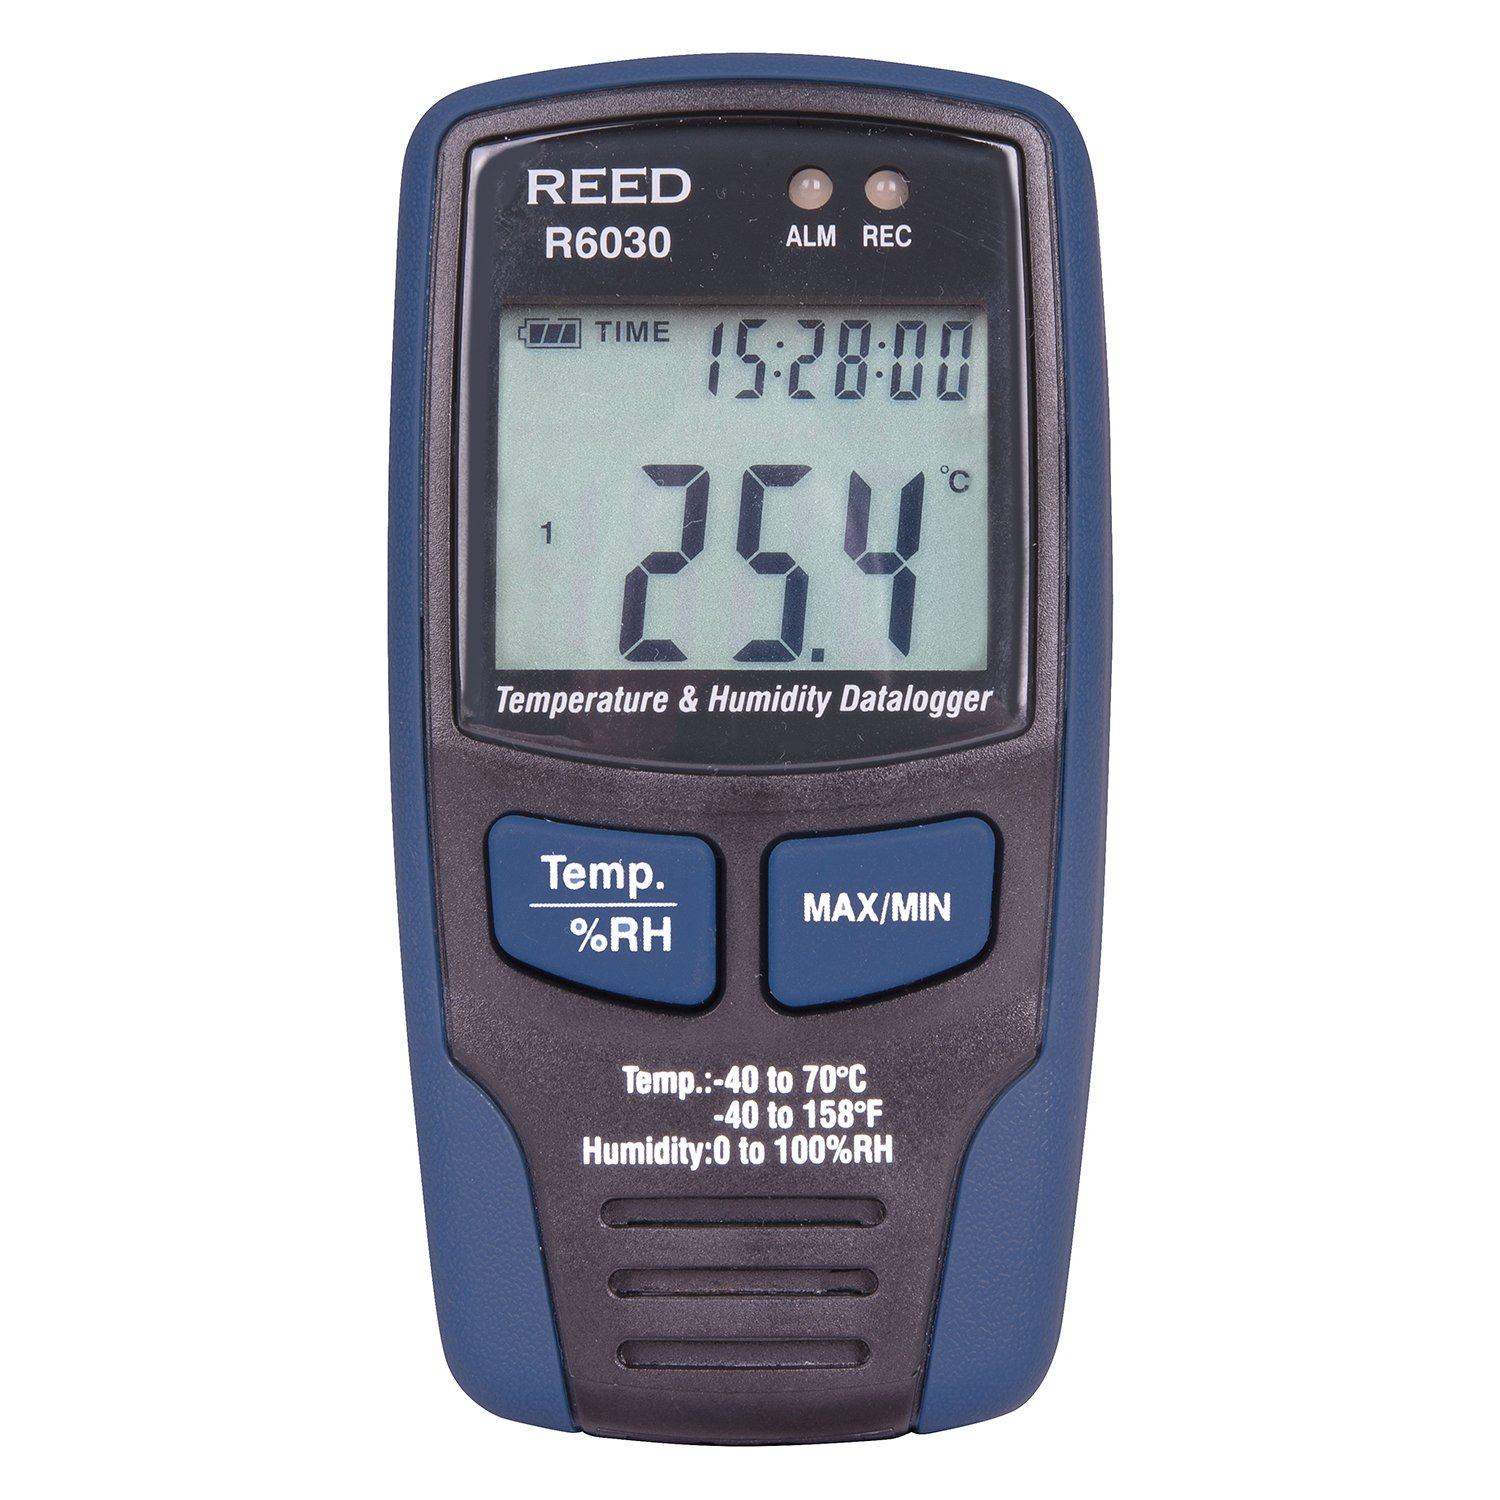 REED Instruments - R6030 Temperature and Humidity Datalogger - Stores Up To 32,000 Readings